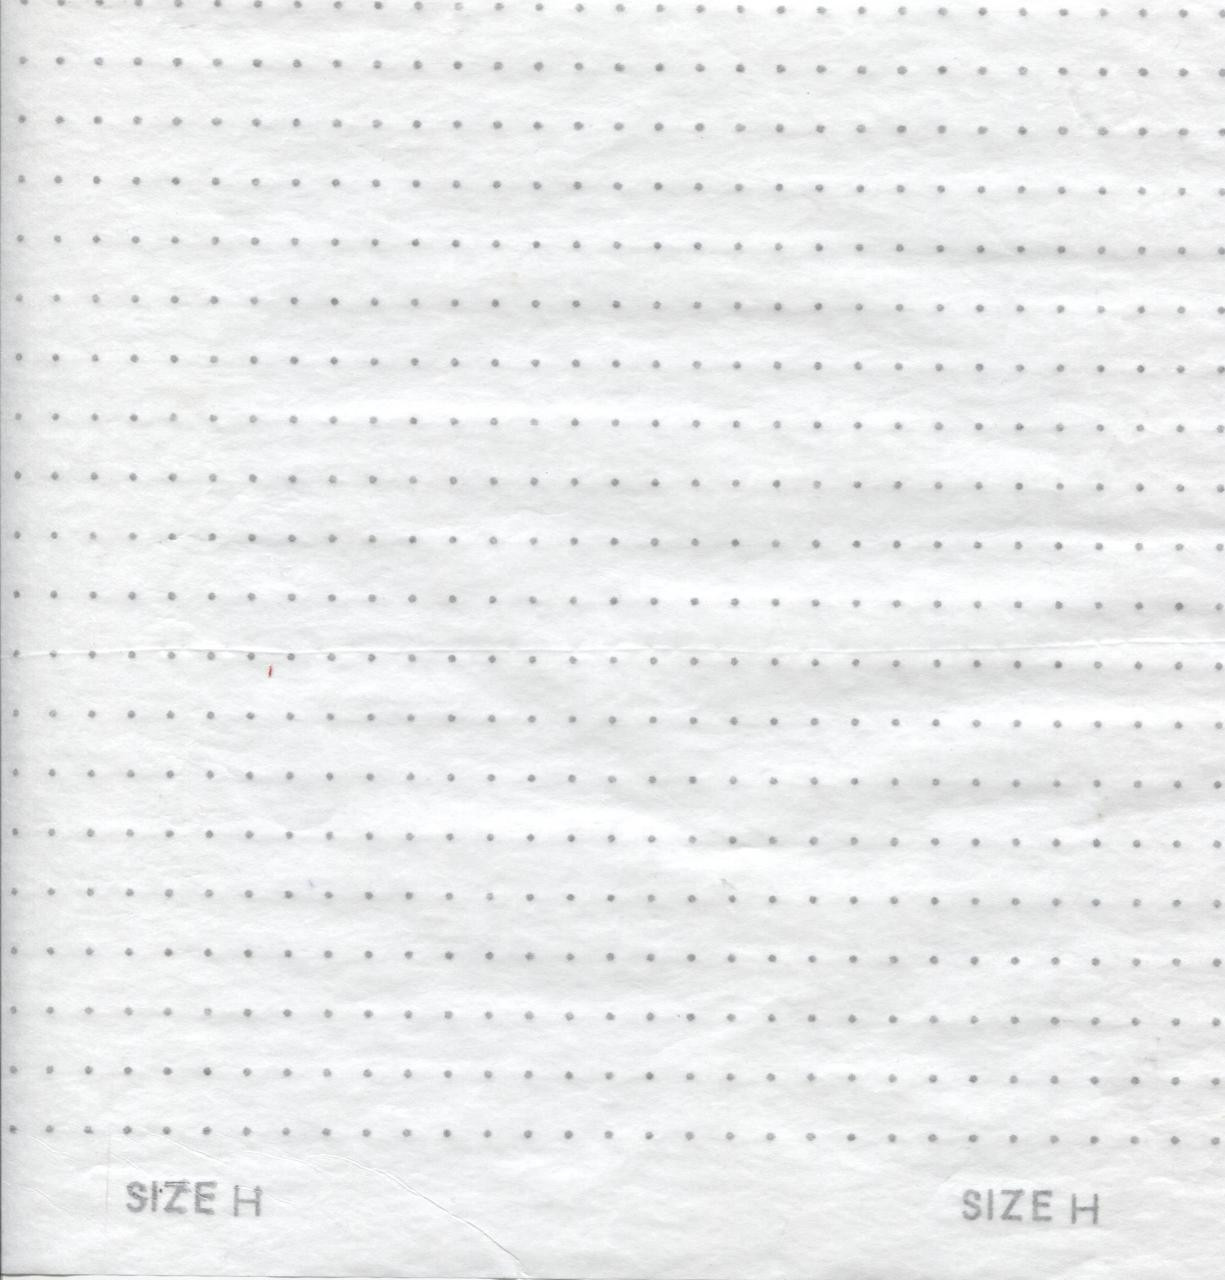 Smocking Transfer Dots - Size 'H' 6.5 mm x 9.5 mm - Use this size for girl's dresses - see video on how to use - one sheet in each pack